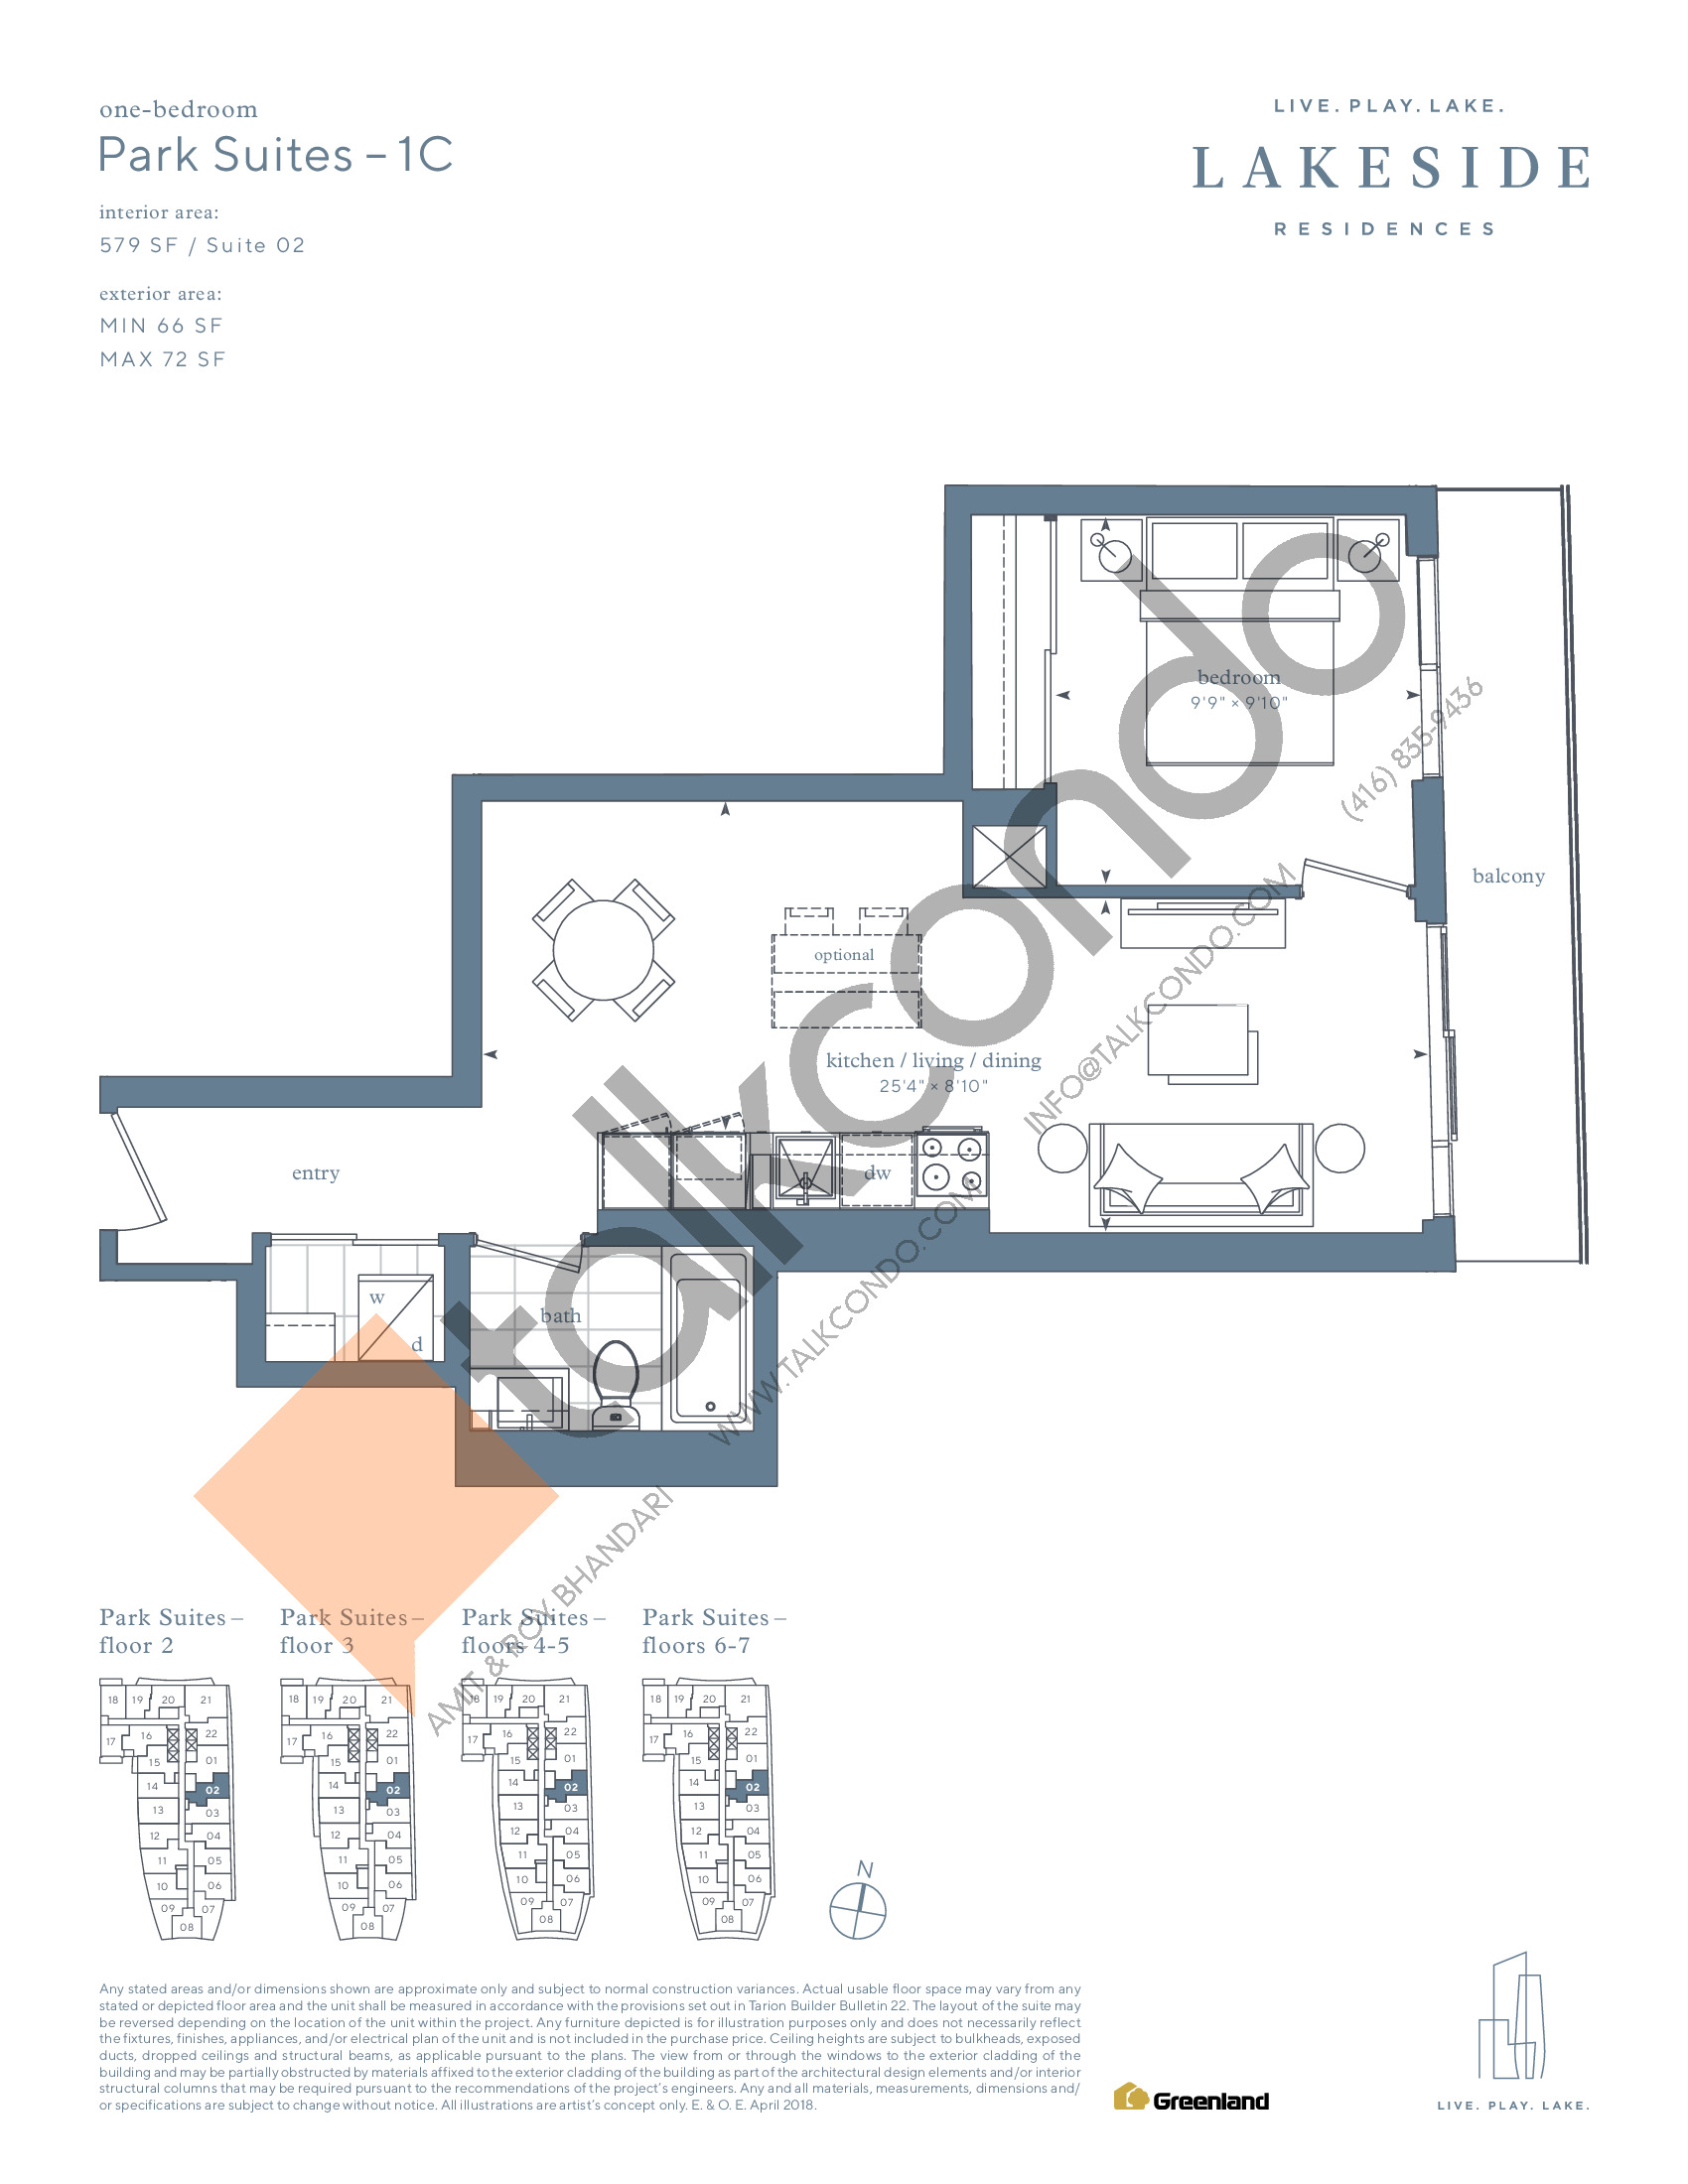 Park Suites - 1C Floor Plan at Lakeside Residences - 579 sq.ft